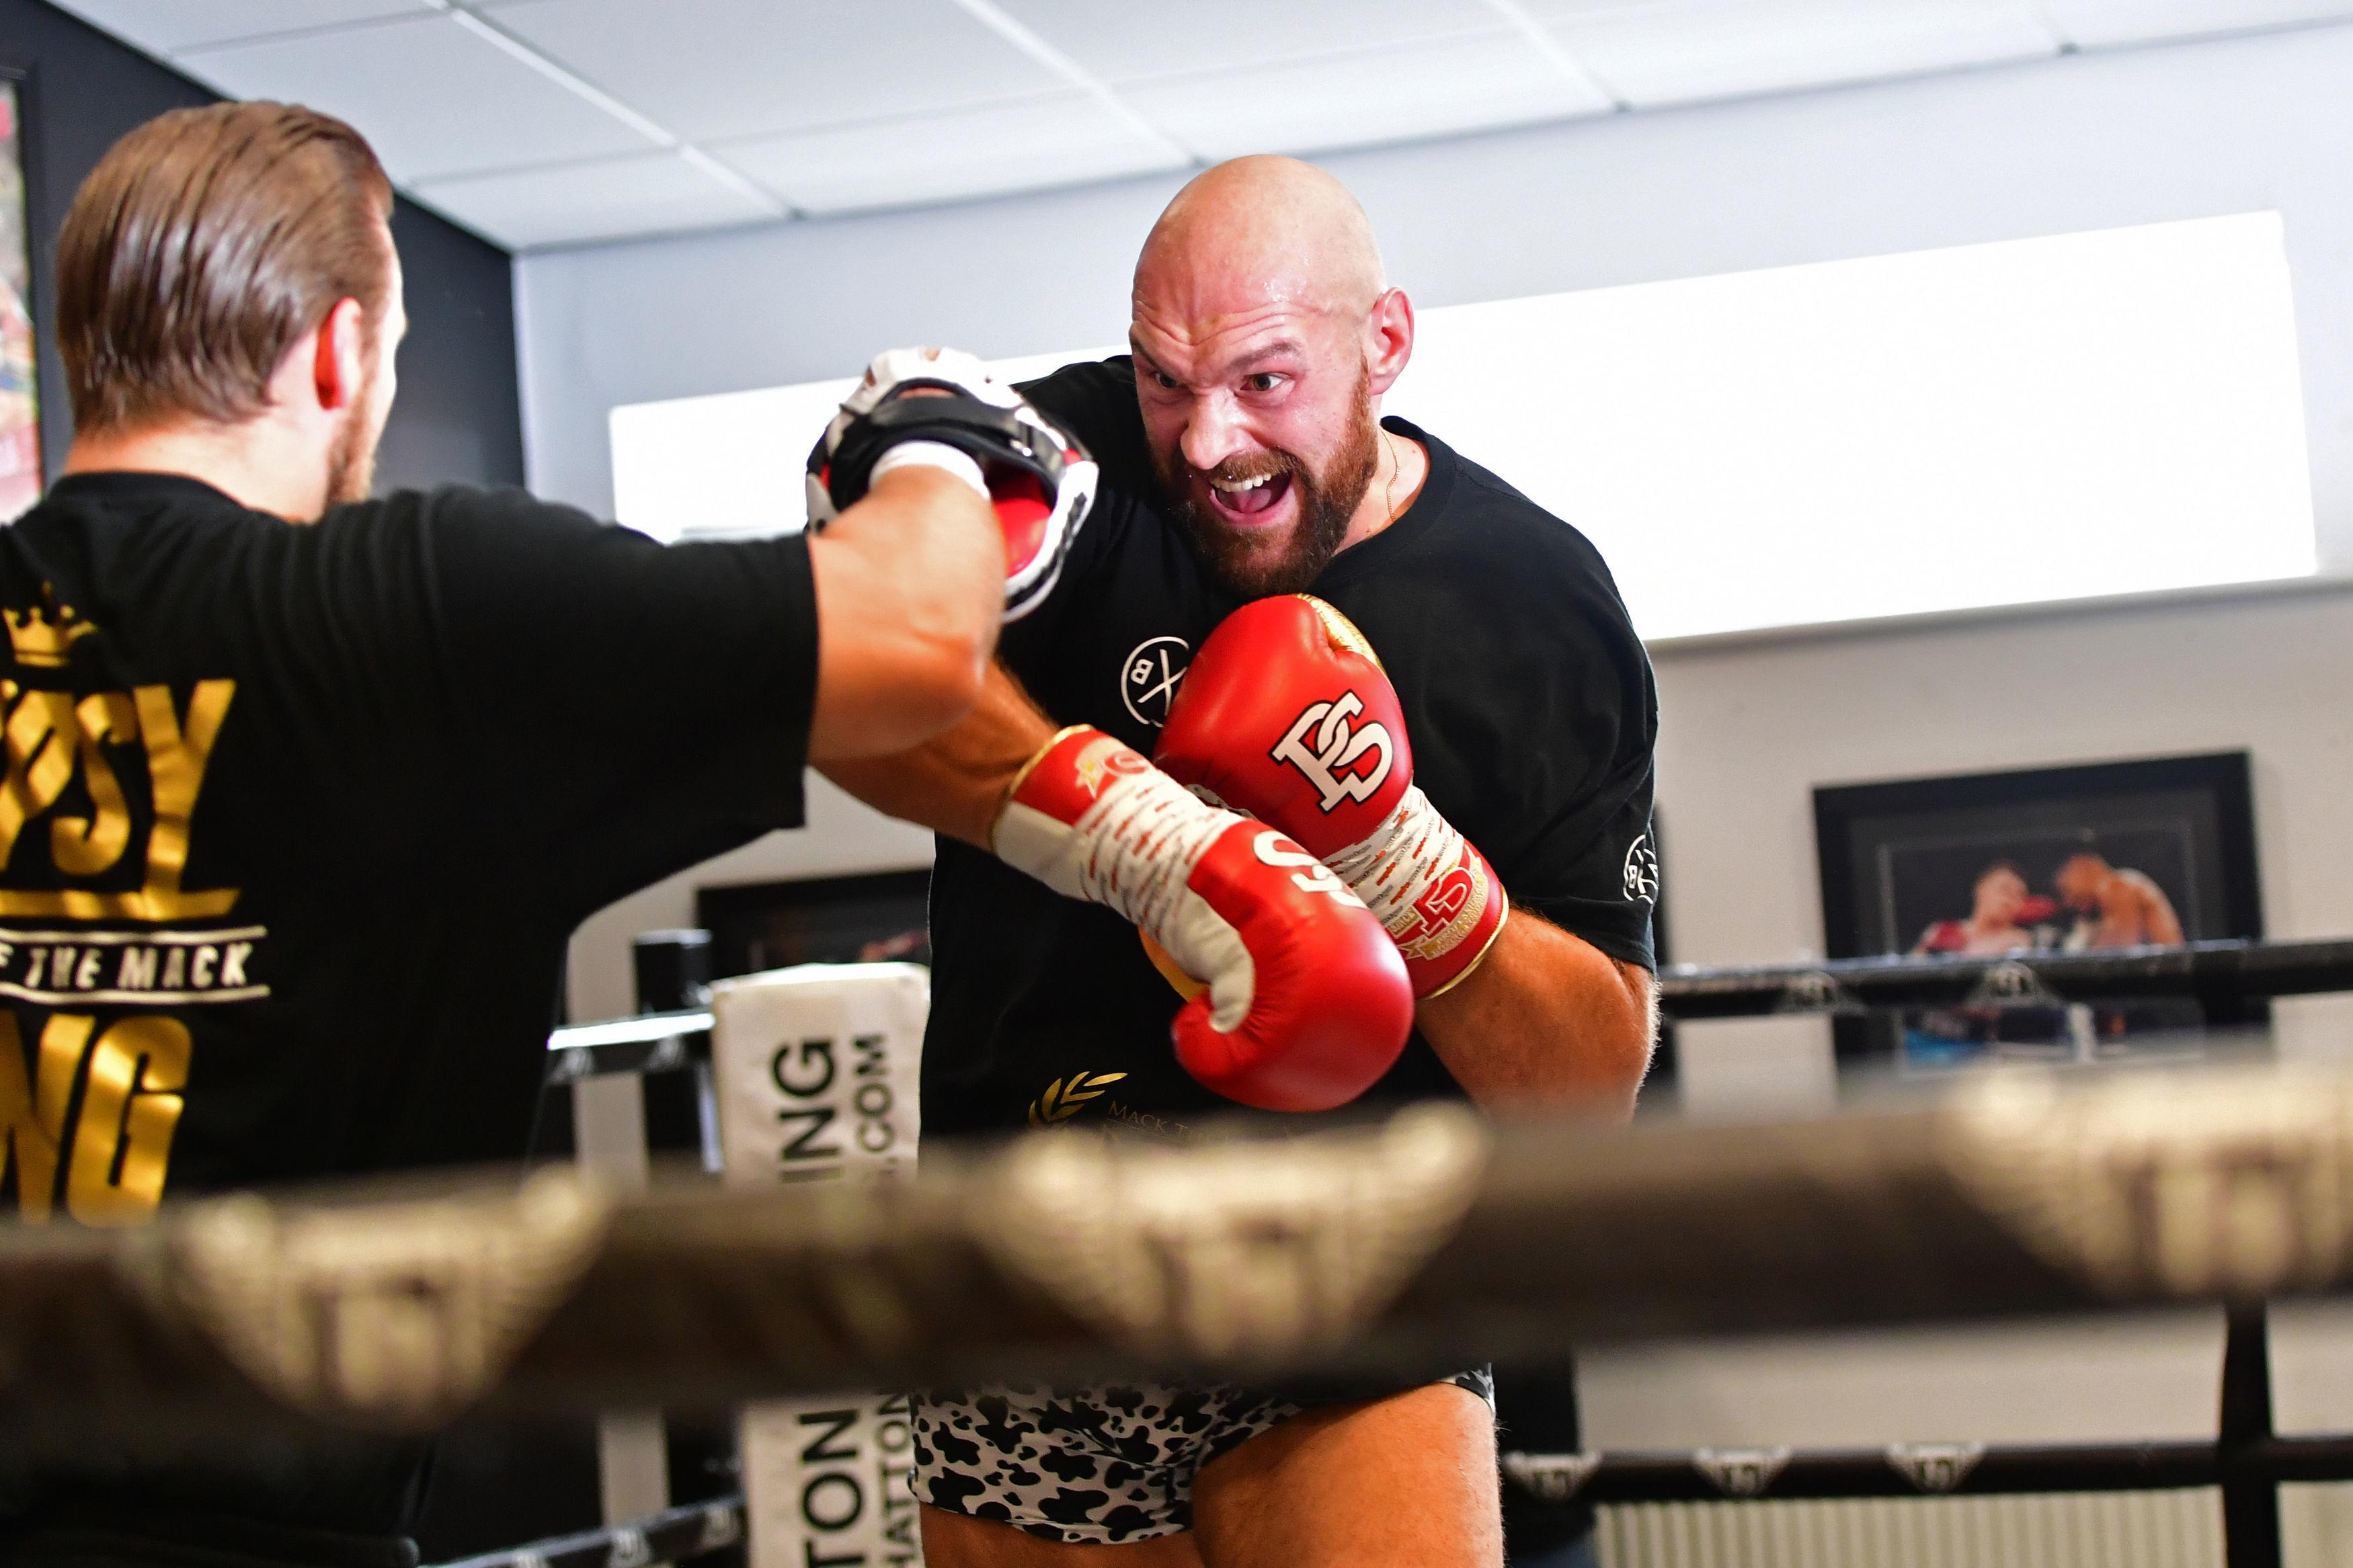 Fury is looking sharp in the gym as he prepares for his second comeback fight